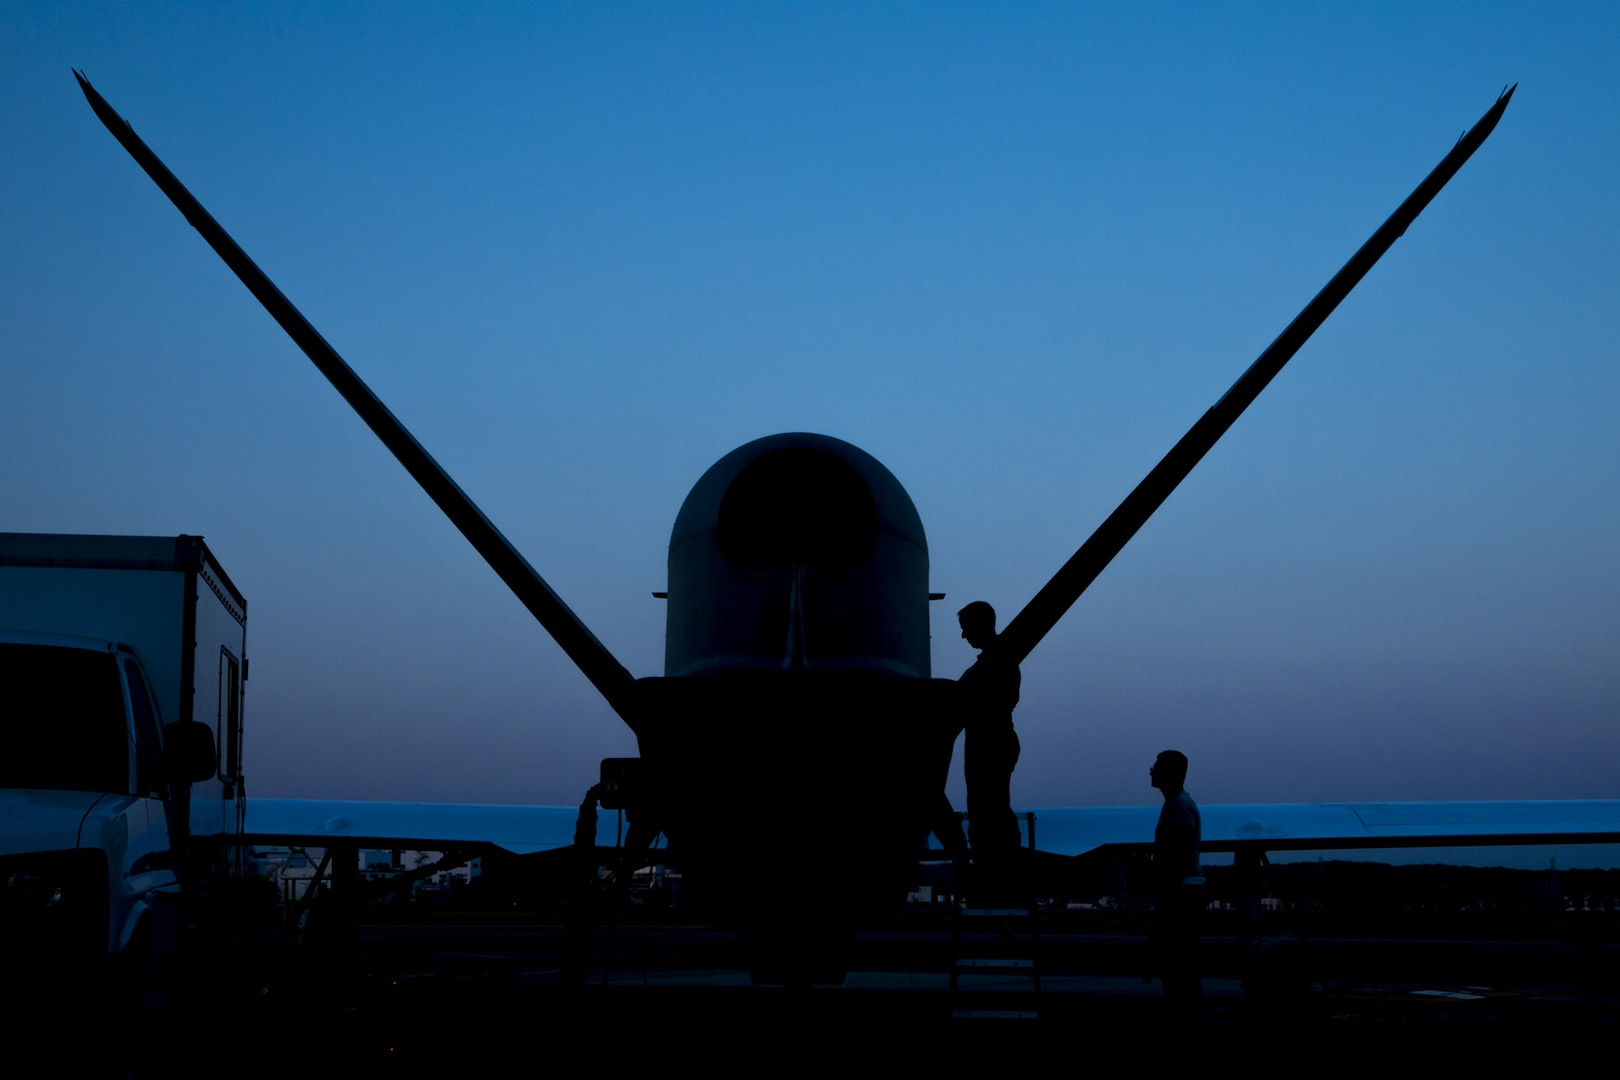 Capt. Mark, 69th Reconnaissance Group Detachment 1, performs preflight checks on an RQ-4 Global Hawk for its first take off from Yokota Air Base, Japan, May 5, 2017. The Global Hawk is temporally deployed to Yokota from Andersen Air Force Base, Guam to support U.S. intelligence, surveillance, and reconnaissance priorities, operational plans and contingency operations throughout the Pacific theater.